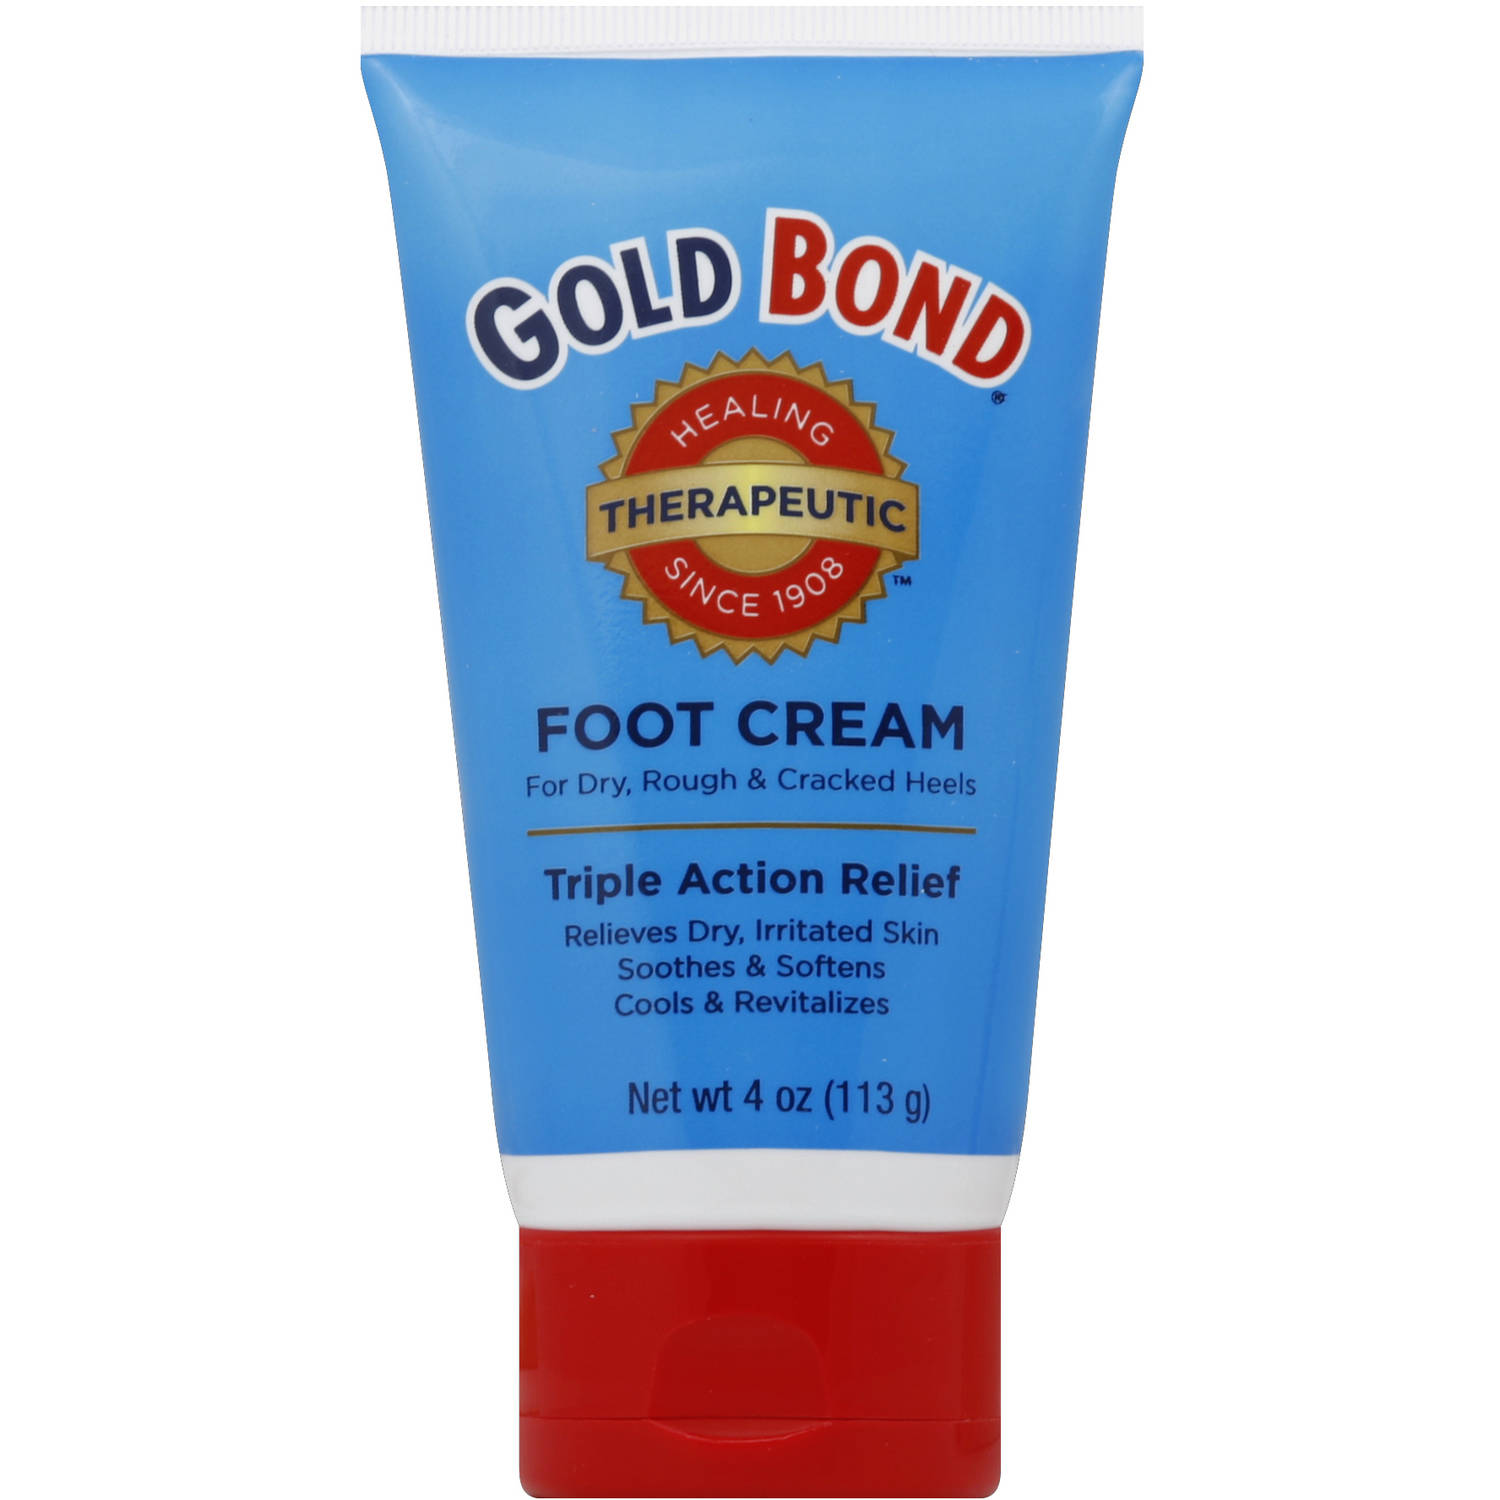 Gold Bond Therapeutic Foot Cream, 4 oz